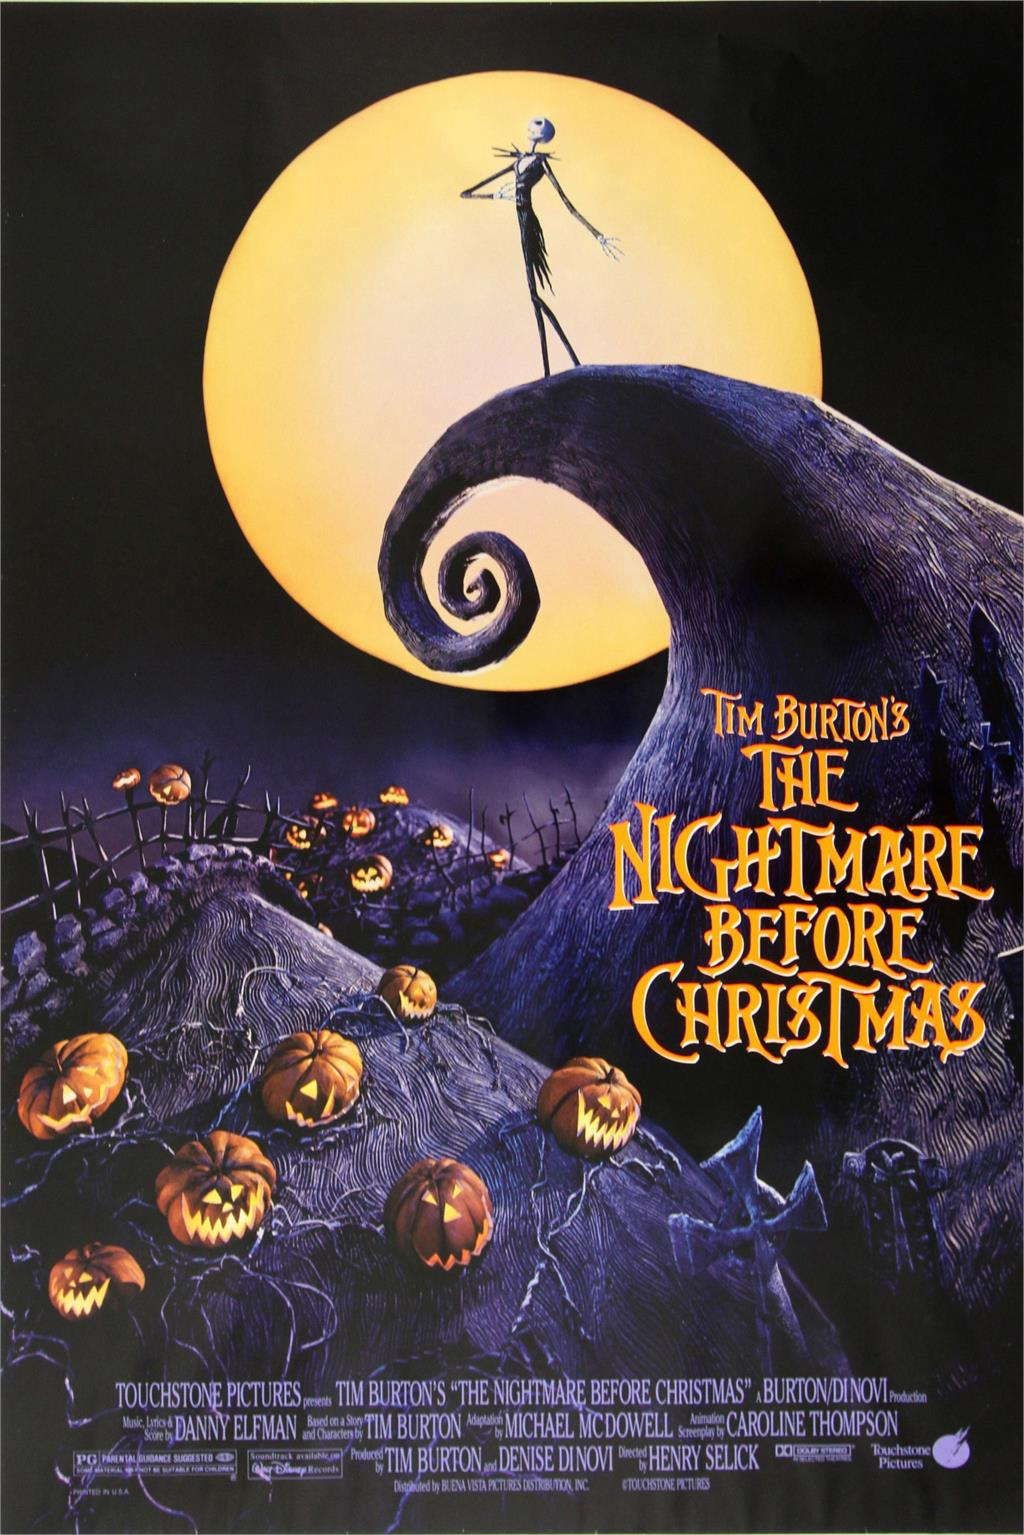 Tim Burton's The Nightmare Before Christmas Movie Classic Poster Home Decoration Art Silk -High quality Picture Print For Gift(China (Mainland))